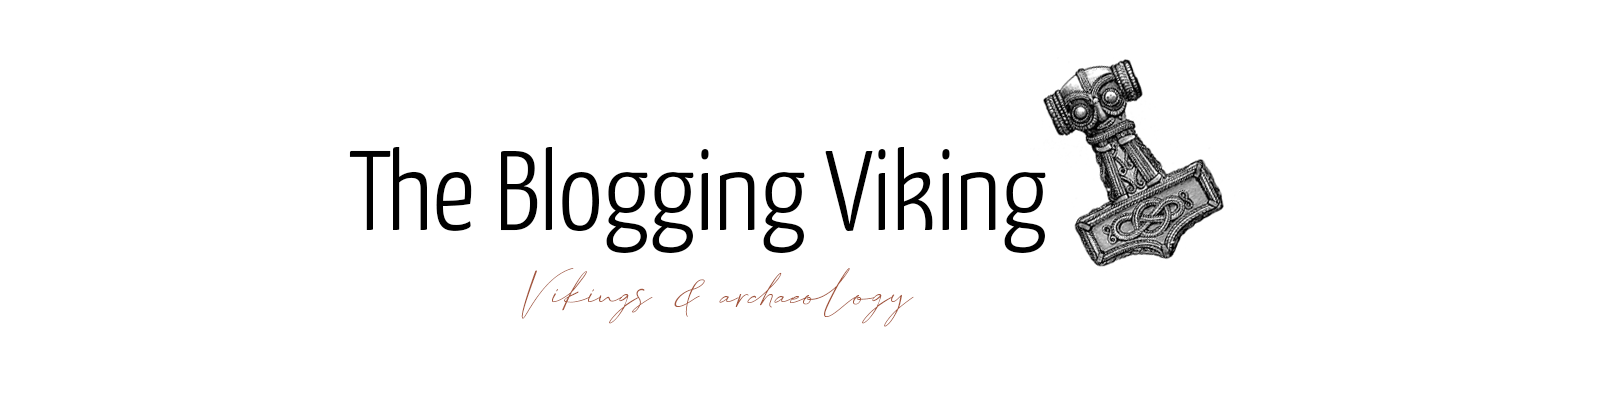 The Blogging Viking